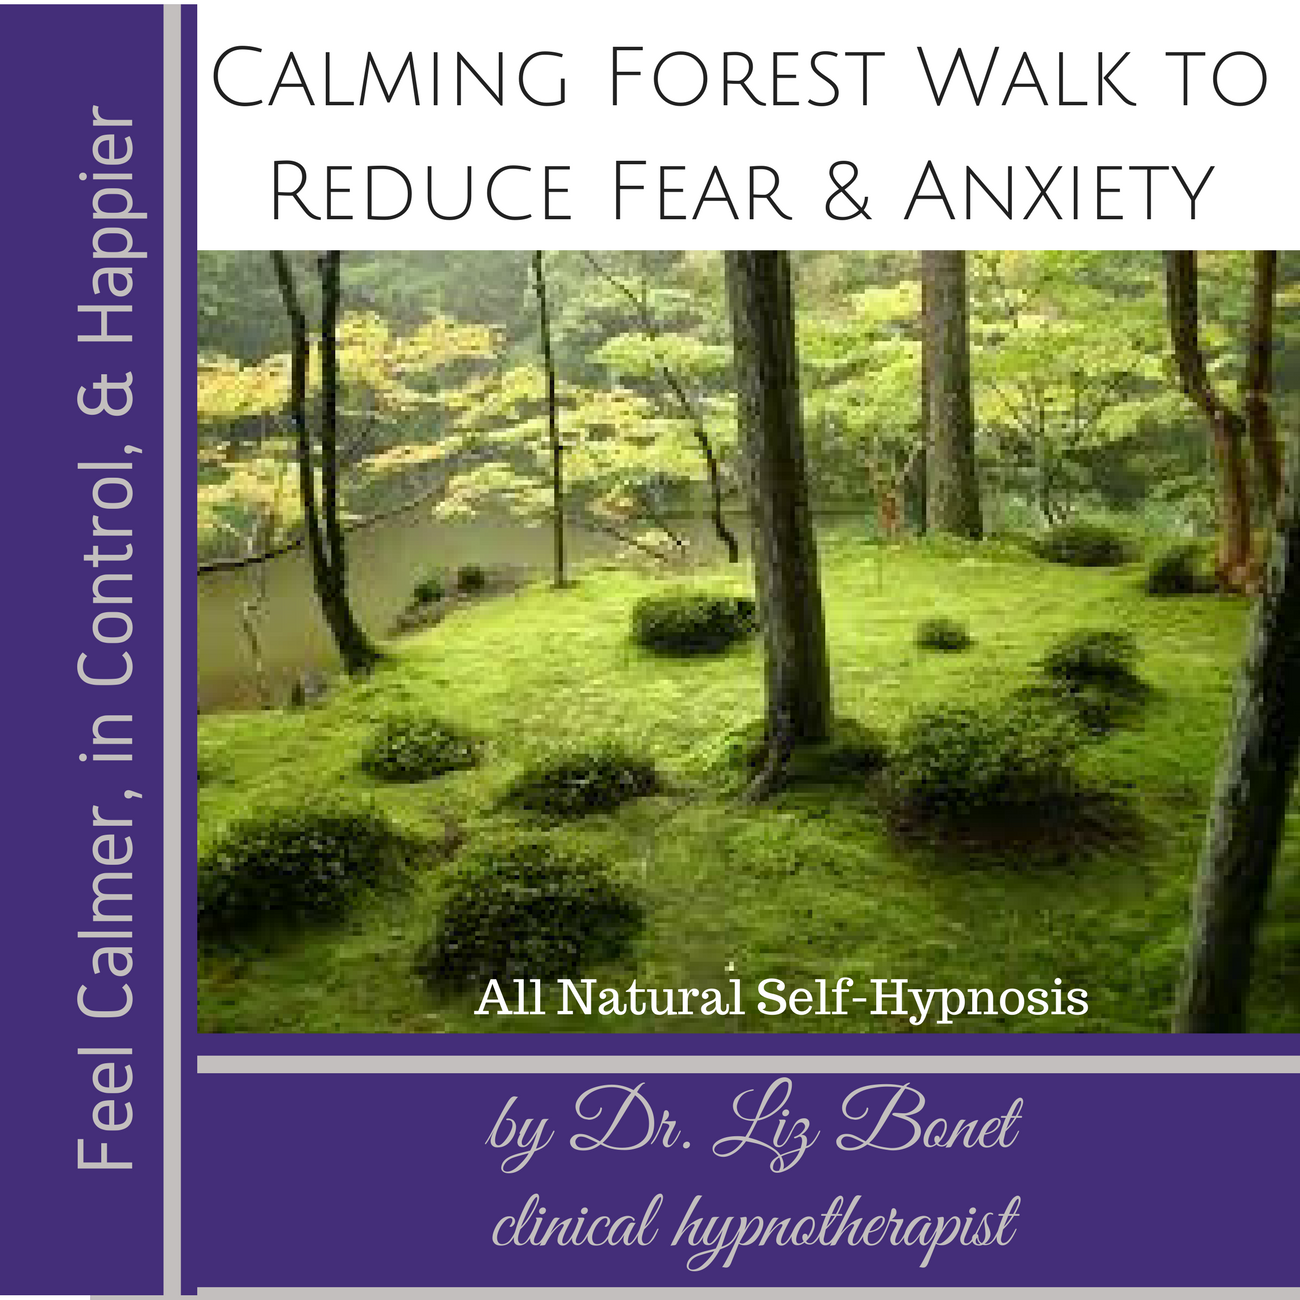 Calming Forest Walk to Reduce Fear & Anxiety